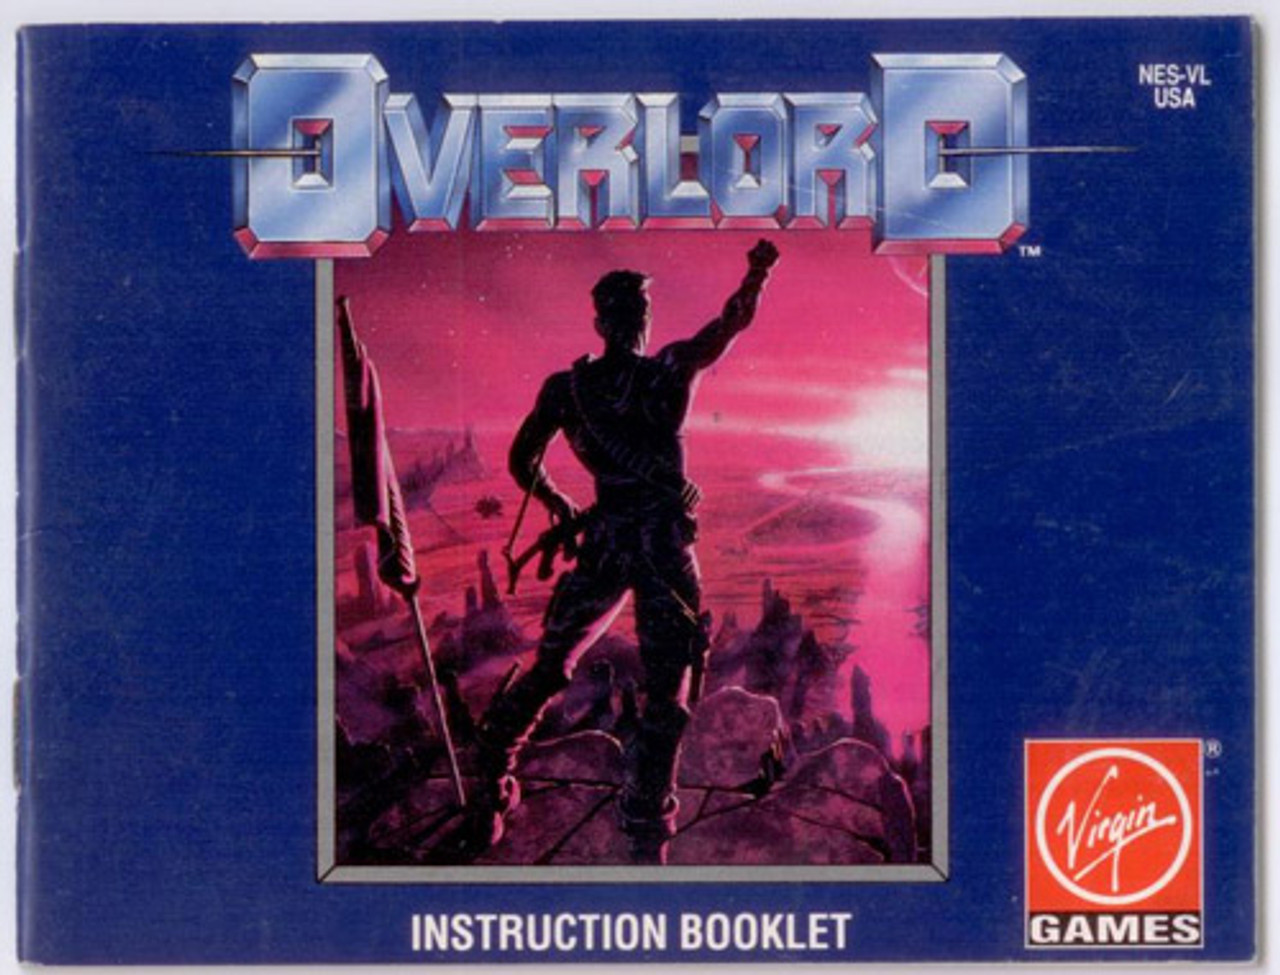 manual overlord nintendo nes instructions for sale dkoldies rh dkoldies com nes game manuals for sale Nintendo NES Manuals